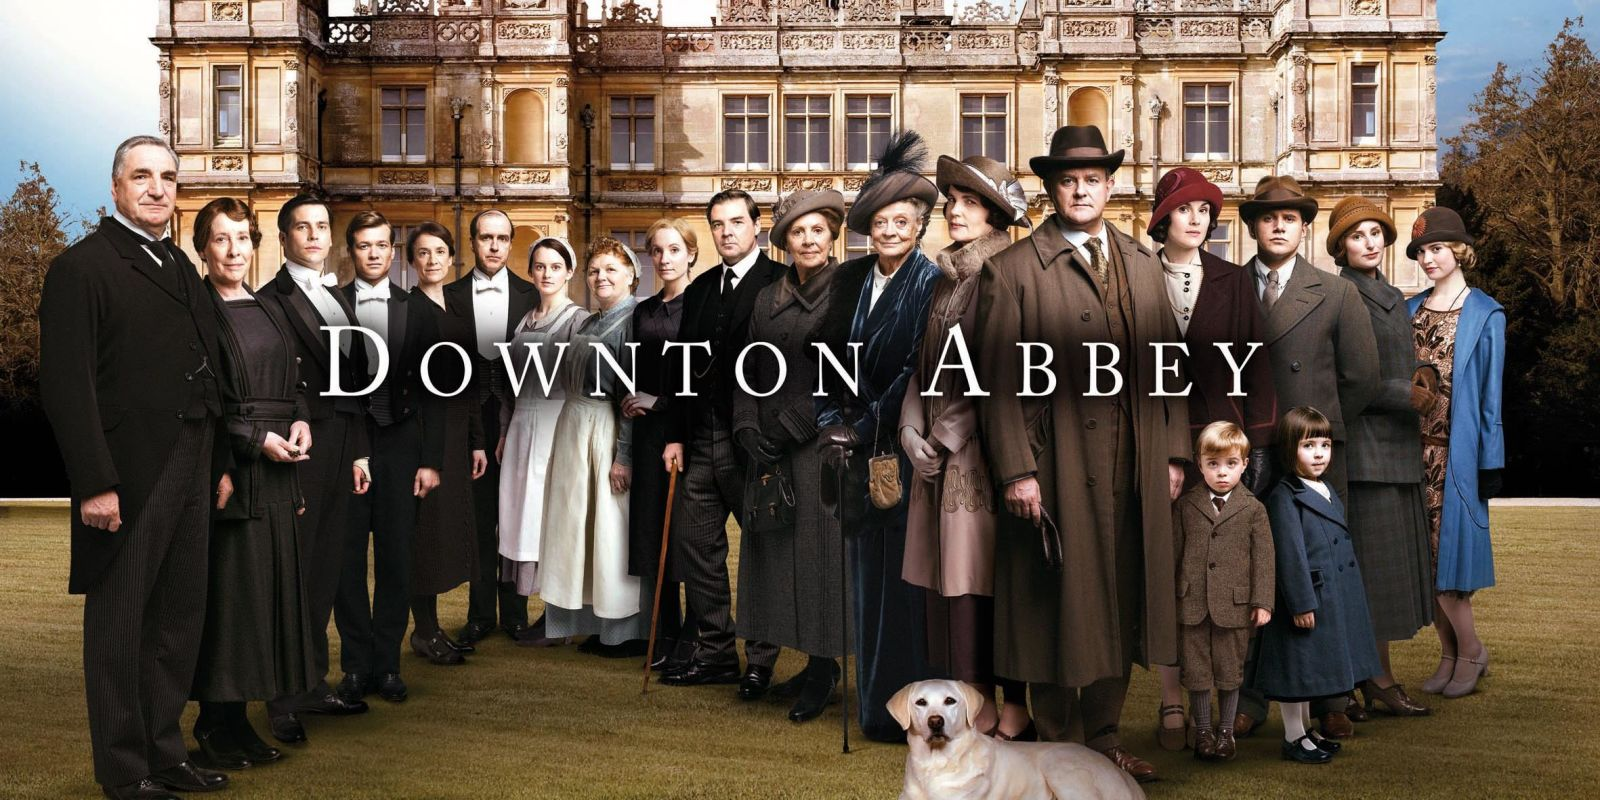 Watch Downton Abbey from the start: All 5 series on ITV Encore